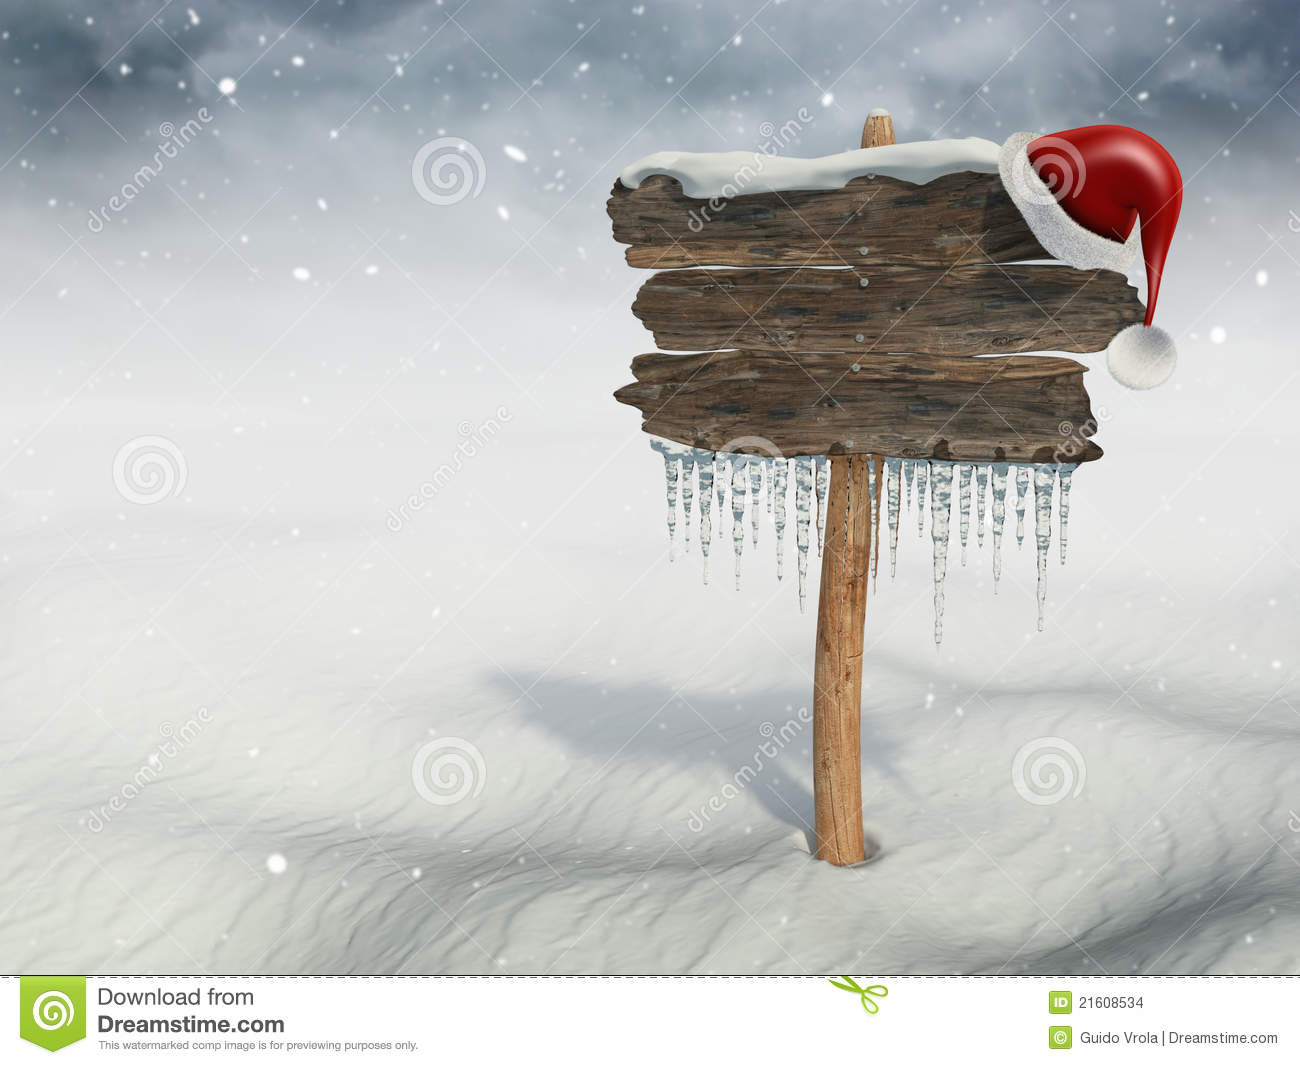 download merry christmas wood sign stock illustration illustration of board 21608534